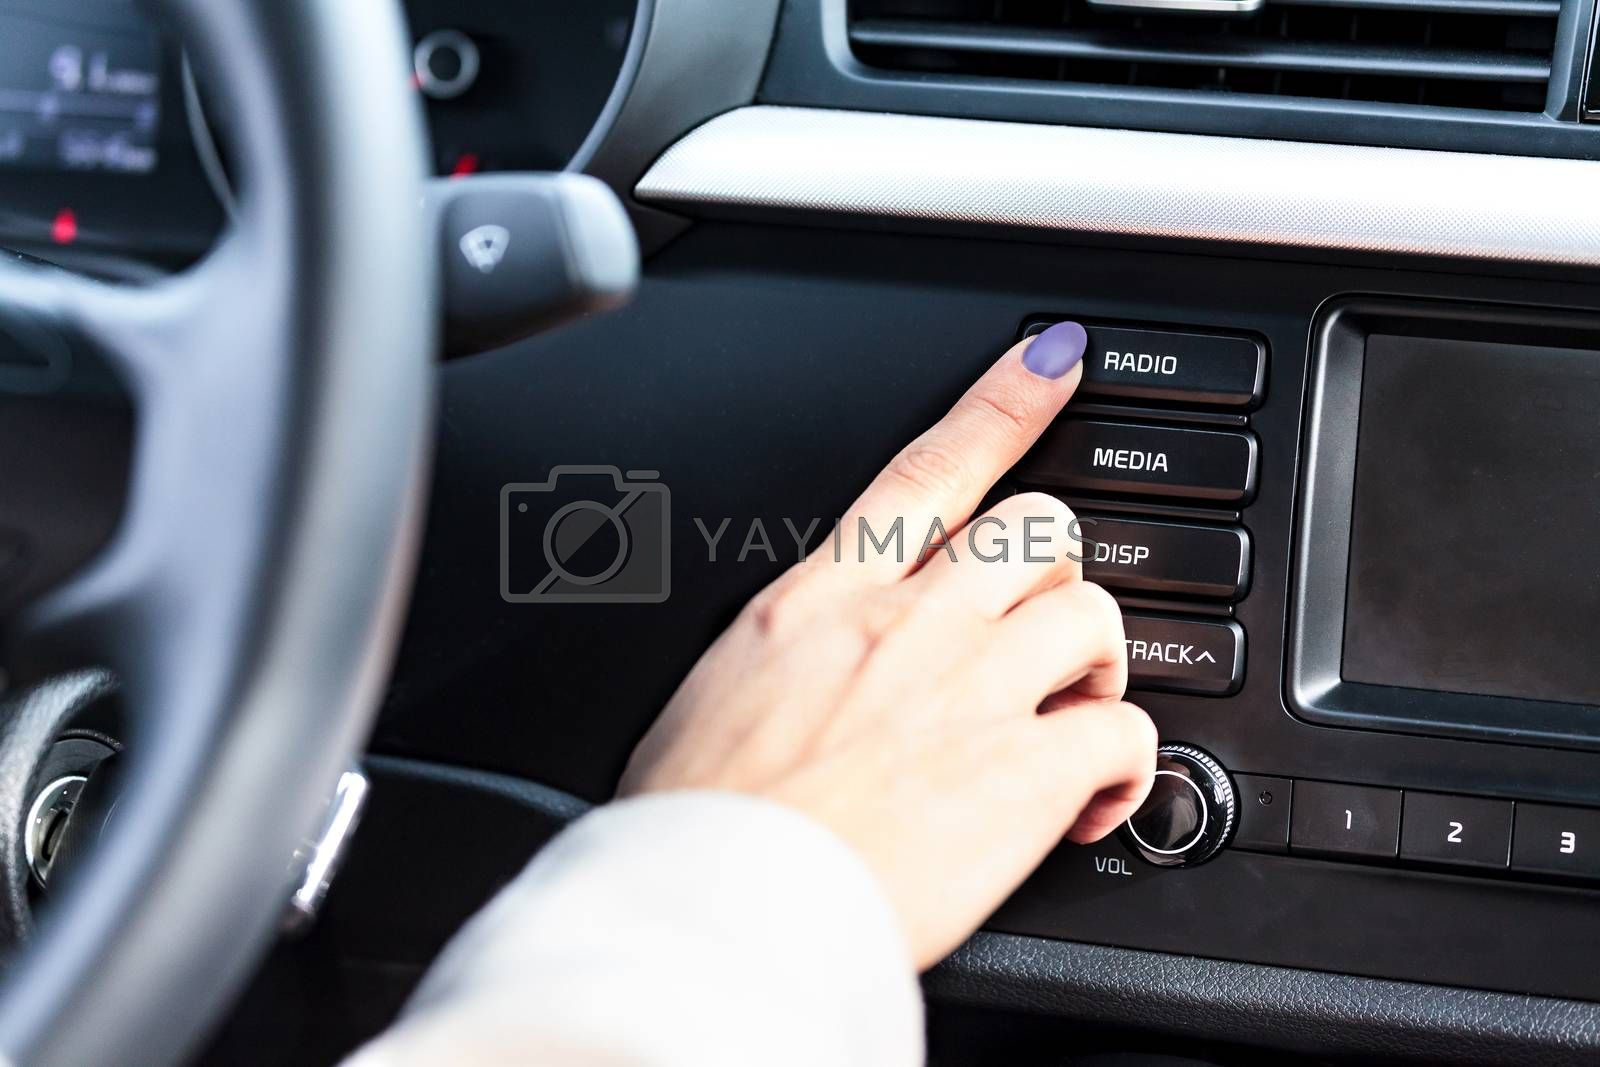 Woman pressing radio button on car's control panel